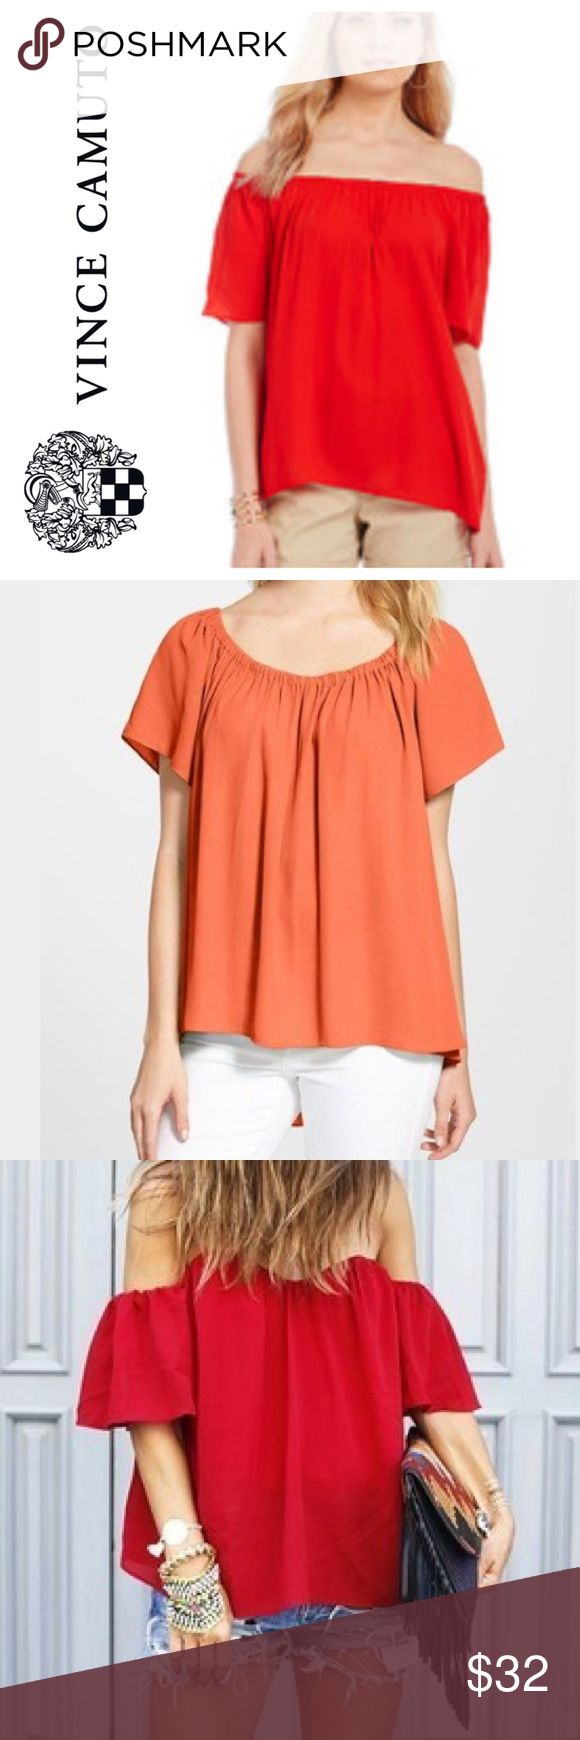 """Vince Camuto red off the shoulder blouse Size XS but could fit XS-L due to the flowy style. The elastic neckline is very stretchy and doesn't squeeze the skin and create """"fat rolls"""" above the elastic. It's very flattering and comfortable. Slight high/low cut and can be worn off the shoulders or on. Front length 20"""", back length 24.5"""". Would be really cute for July 4th! Pic 3 for styling only, not exact top. 100% polyester.  ❌no offers or trades, priced to sell  15% discount on bundles of 2…"""